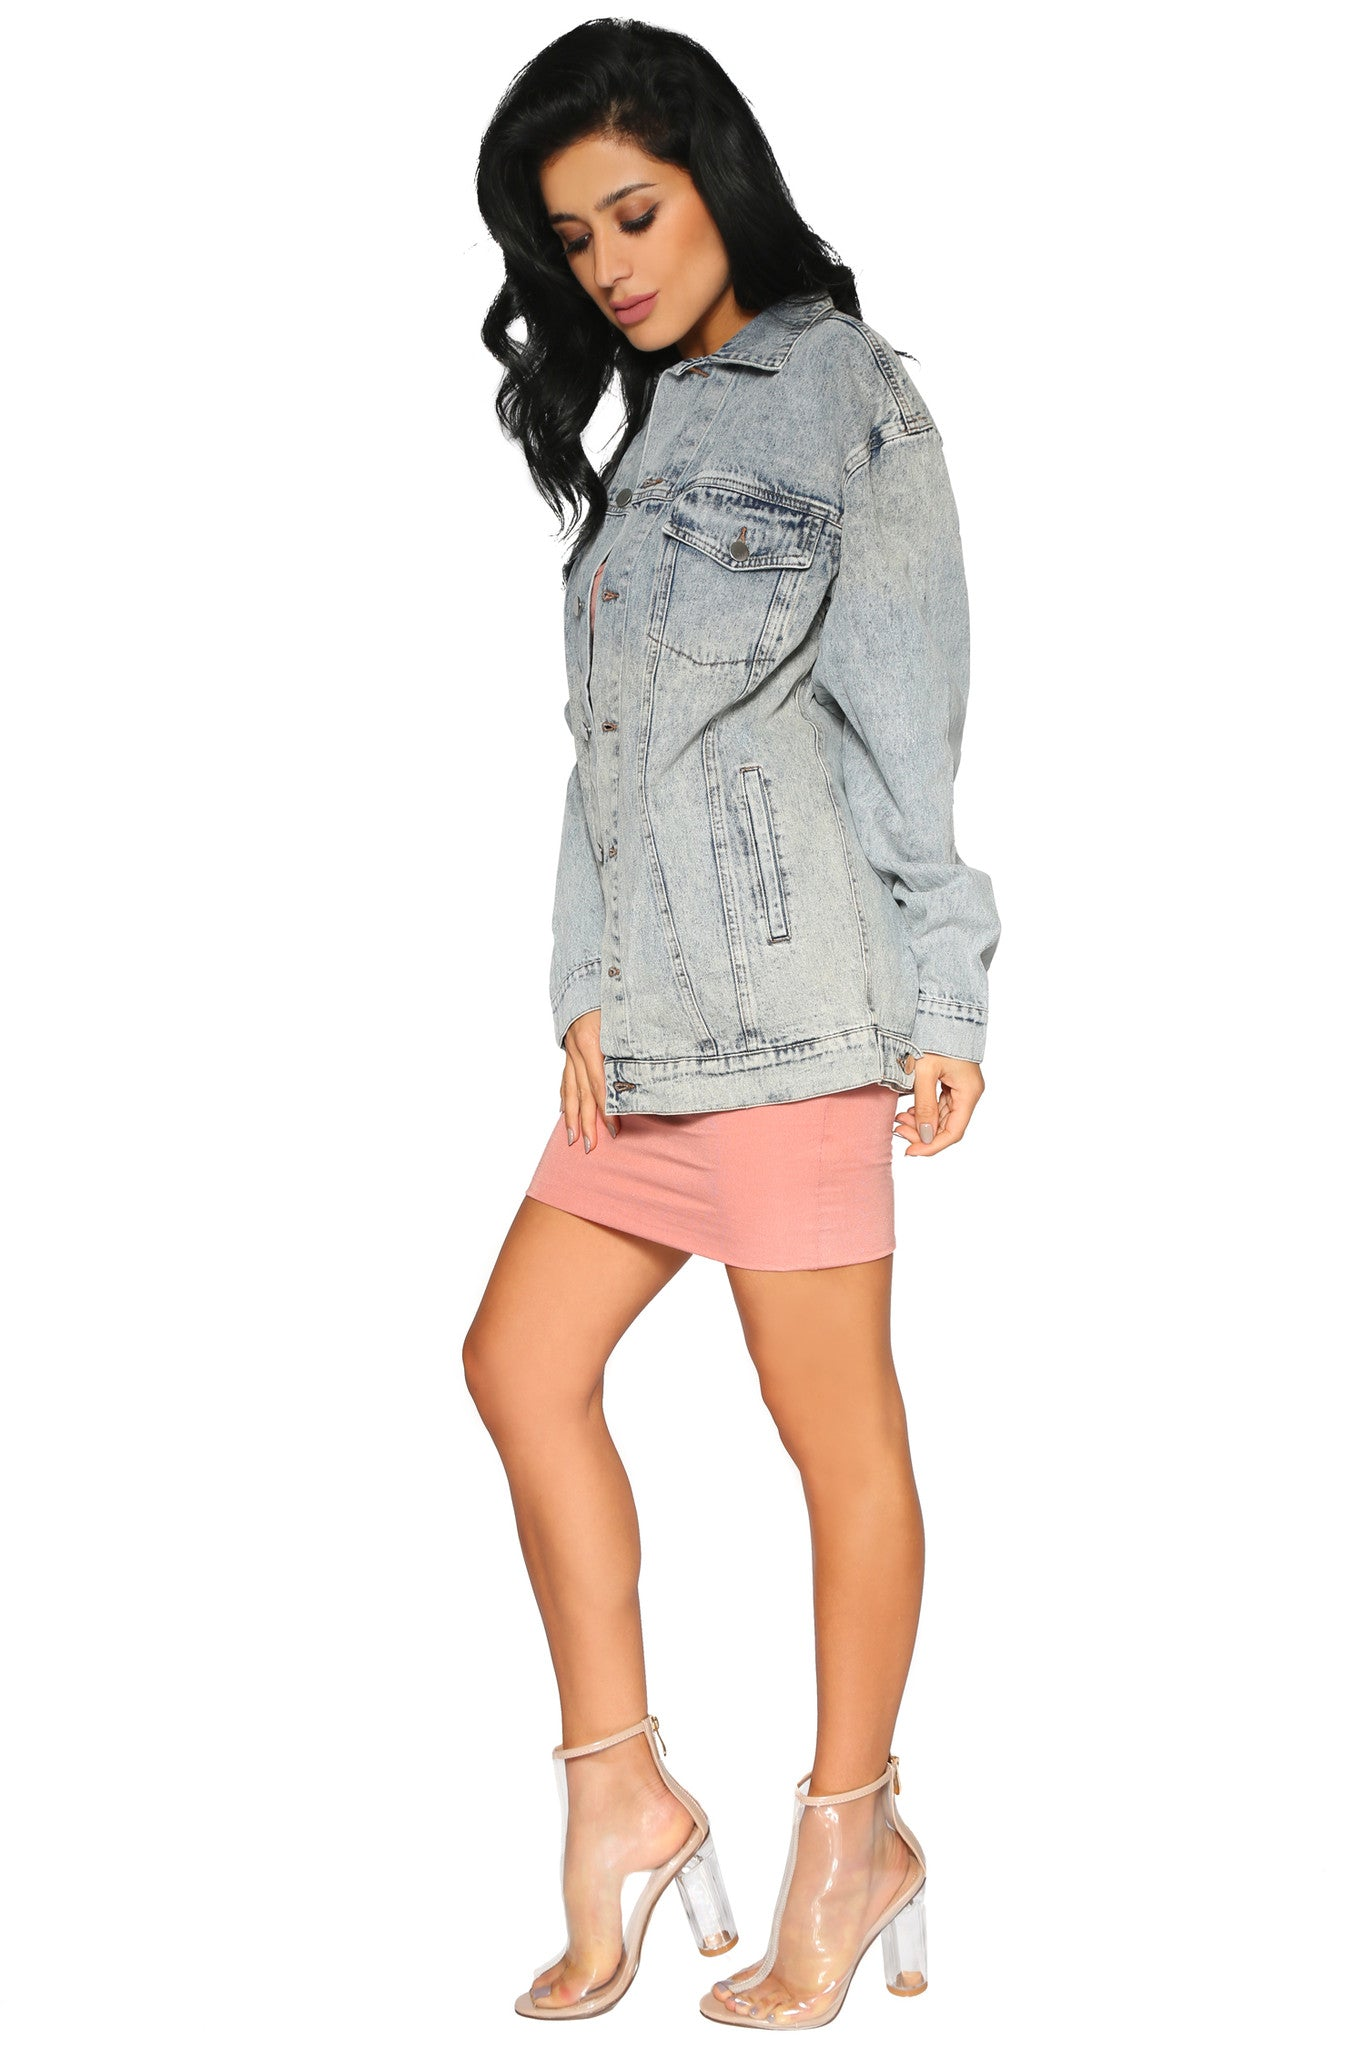 CLEO OVERSIZED DENIM JACKET - Glam Envy - 2